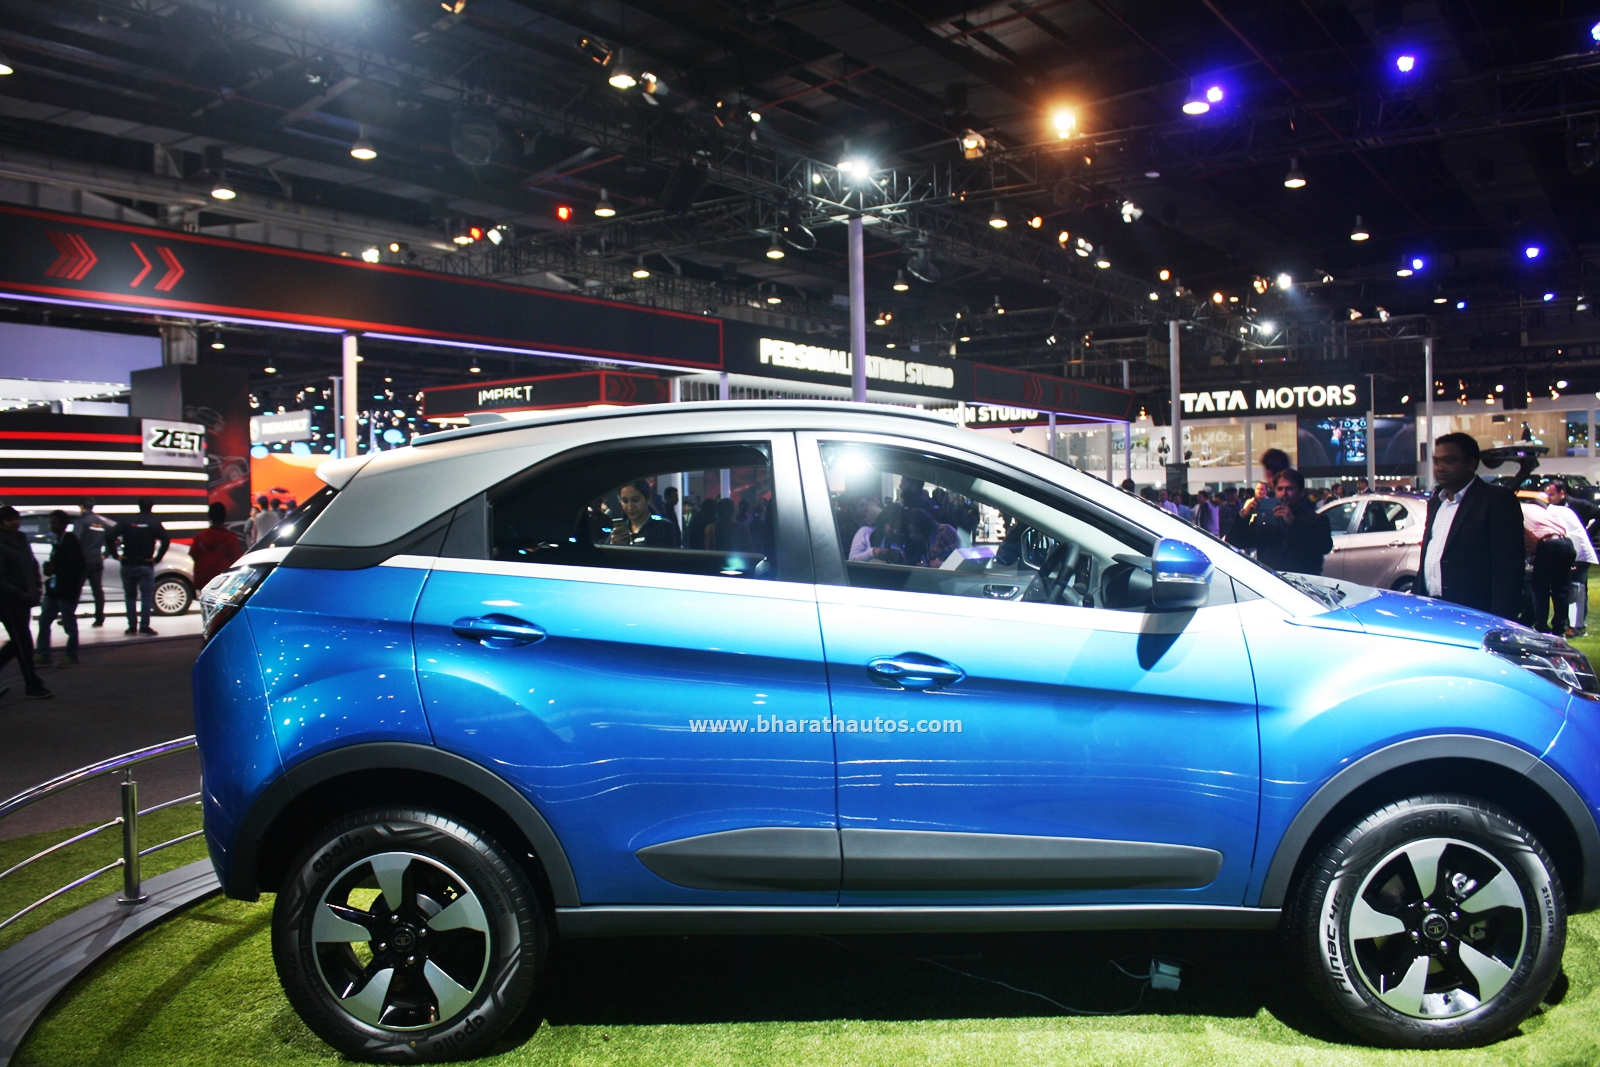 First Live Shots of the Production-version Tata Nexon ...